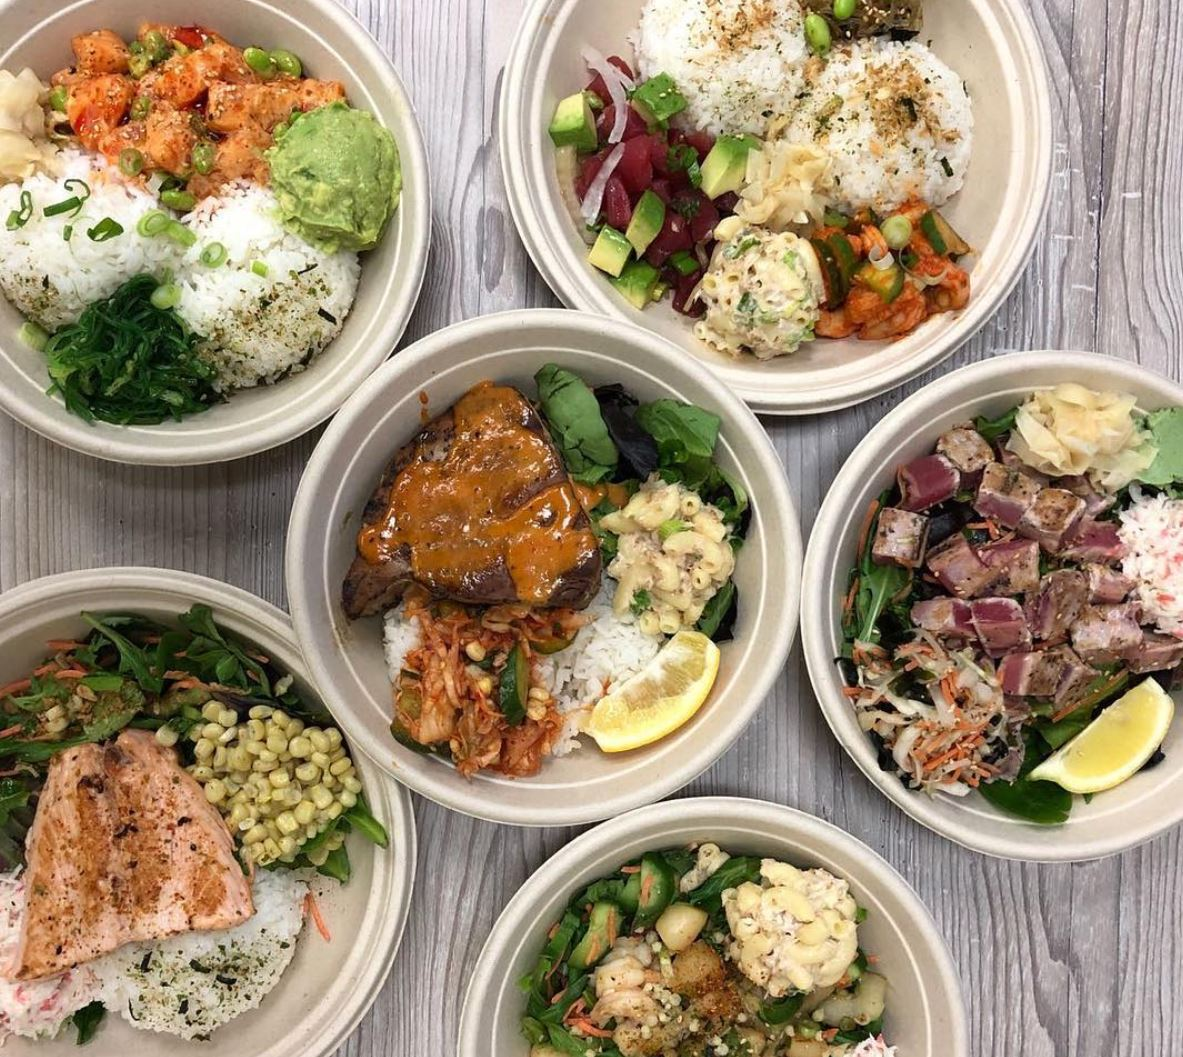 Mar. 29 - 30 | Bigeye Poke Grill Grand Opens in Placentia - 50% Off All Bowls